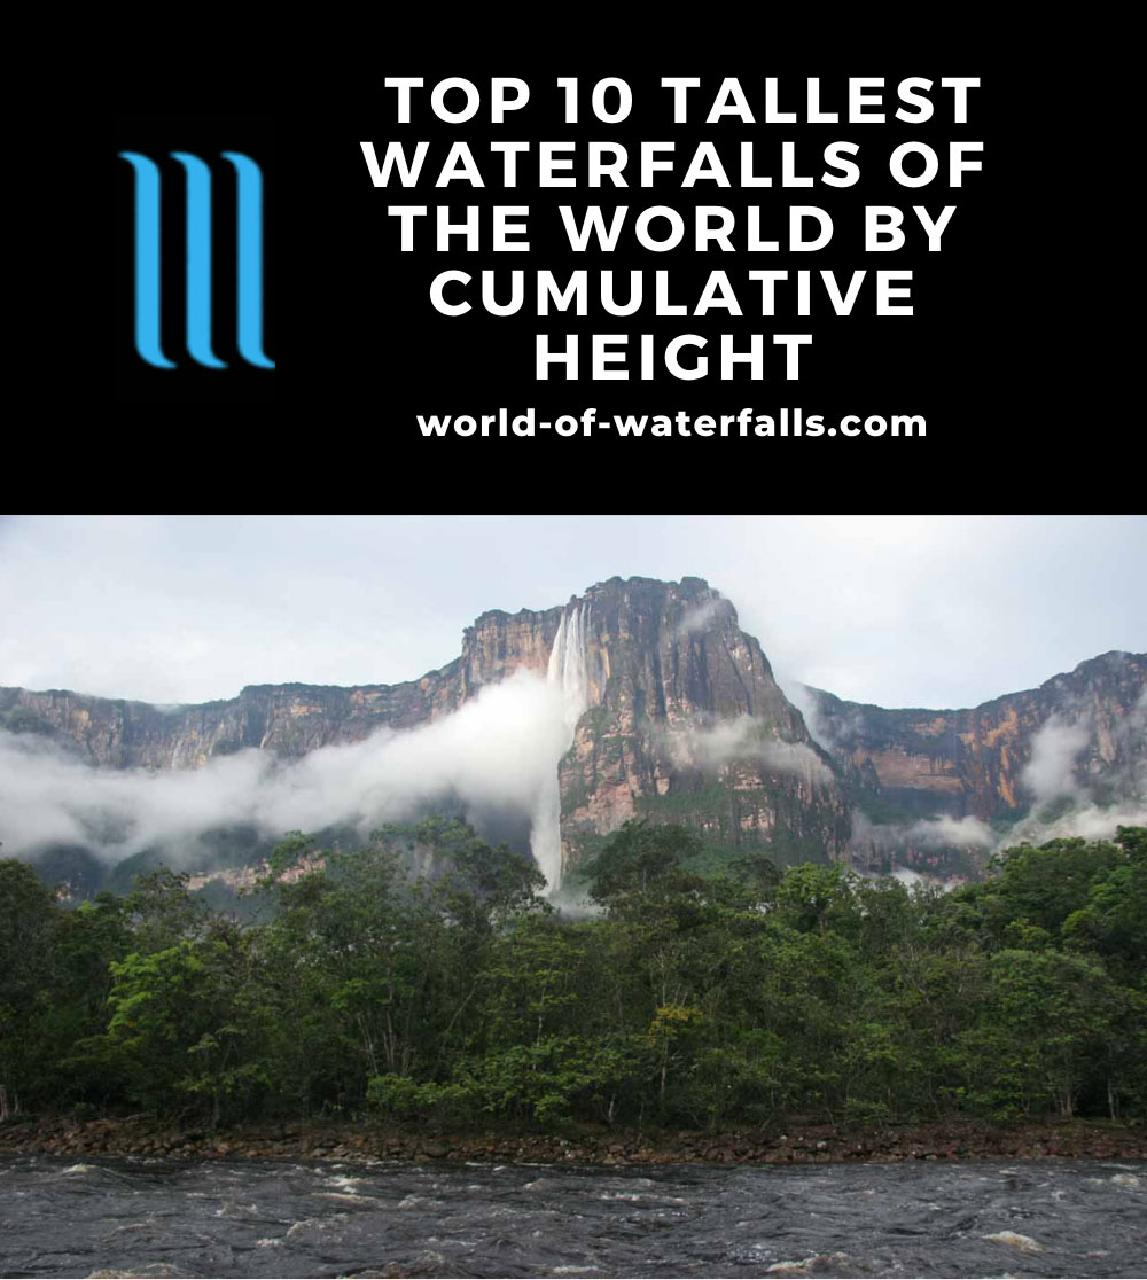 The 10 Tallest Waterfalls of the World based on Cumulative Height